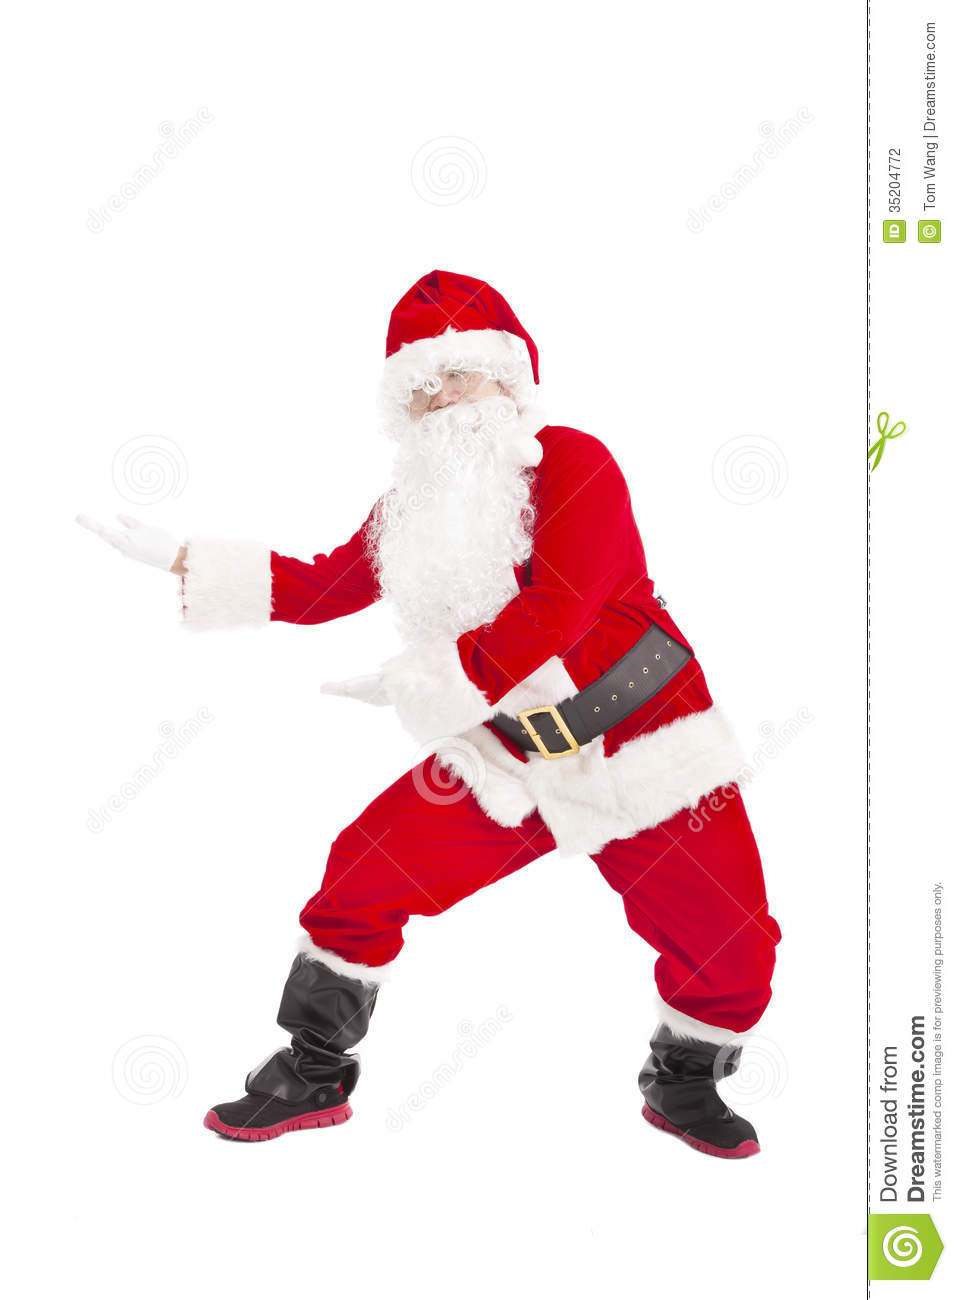 Christmas Dancing Santa.Happy Christmas Santa Claus Dancing Stock Photo Image Of